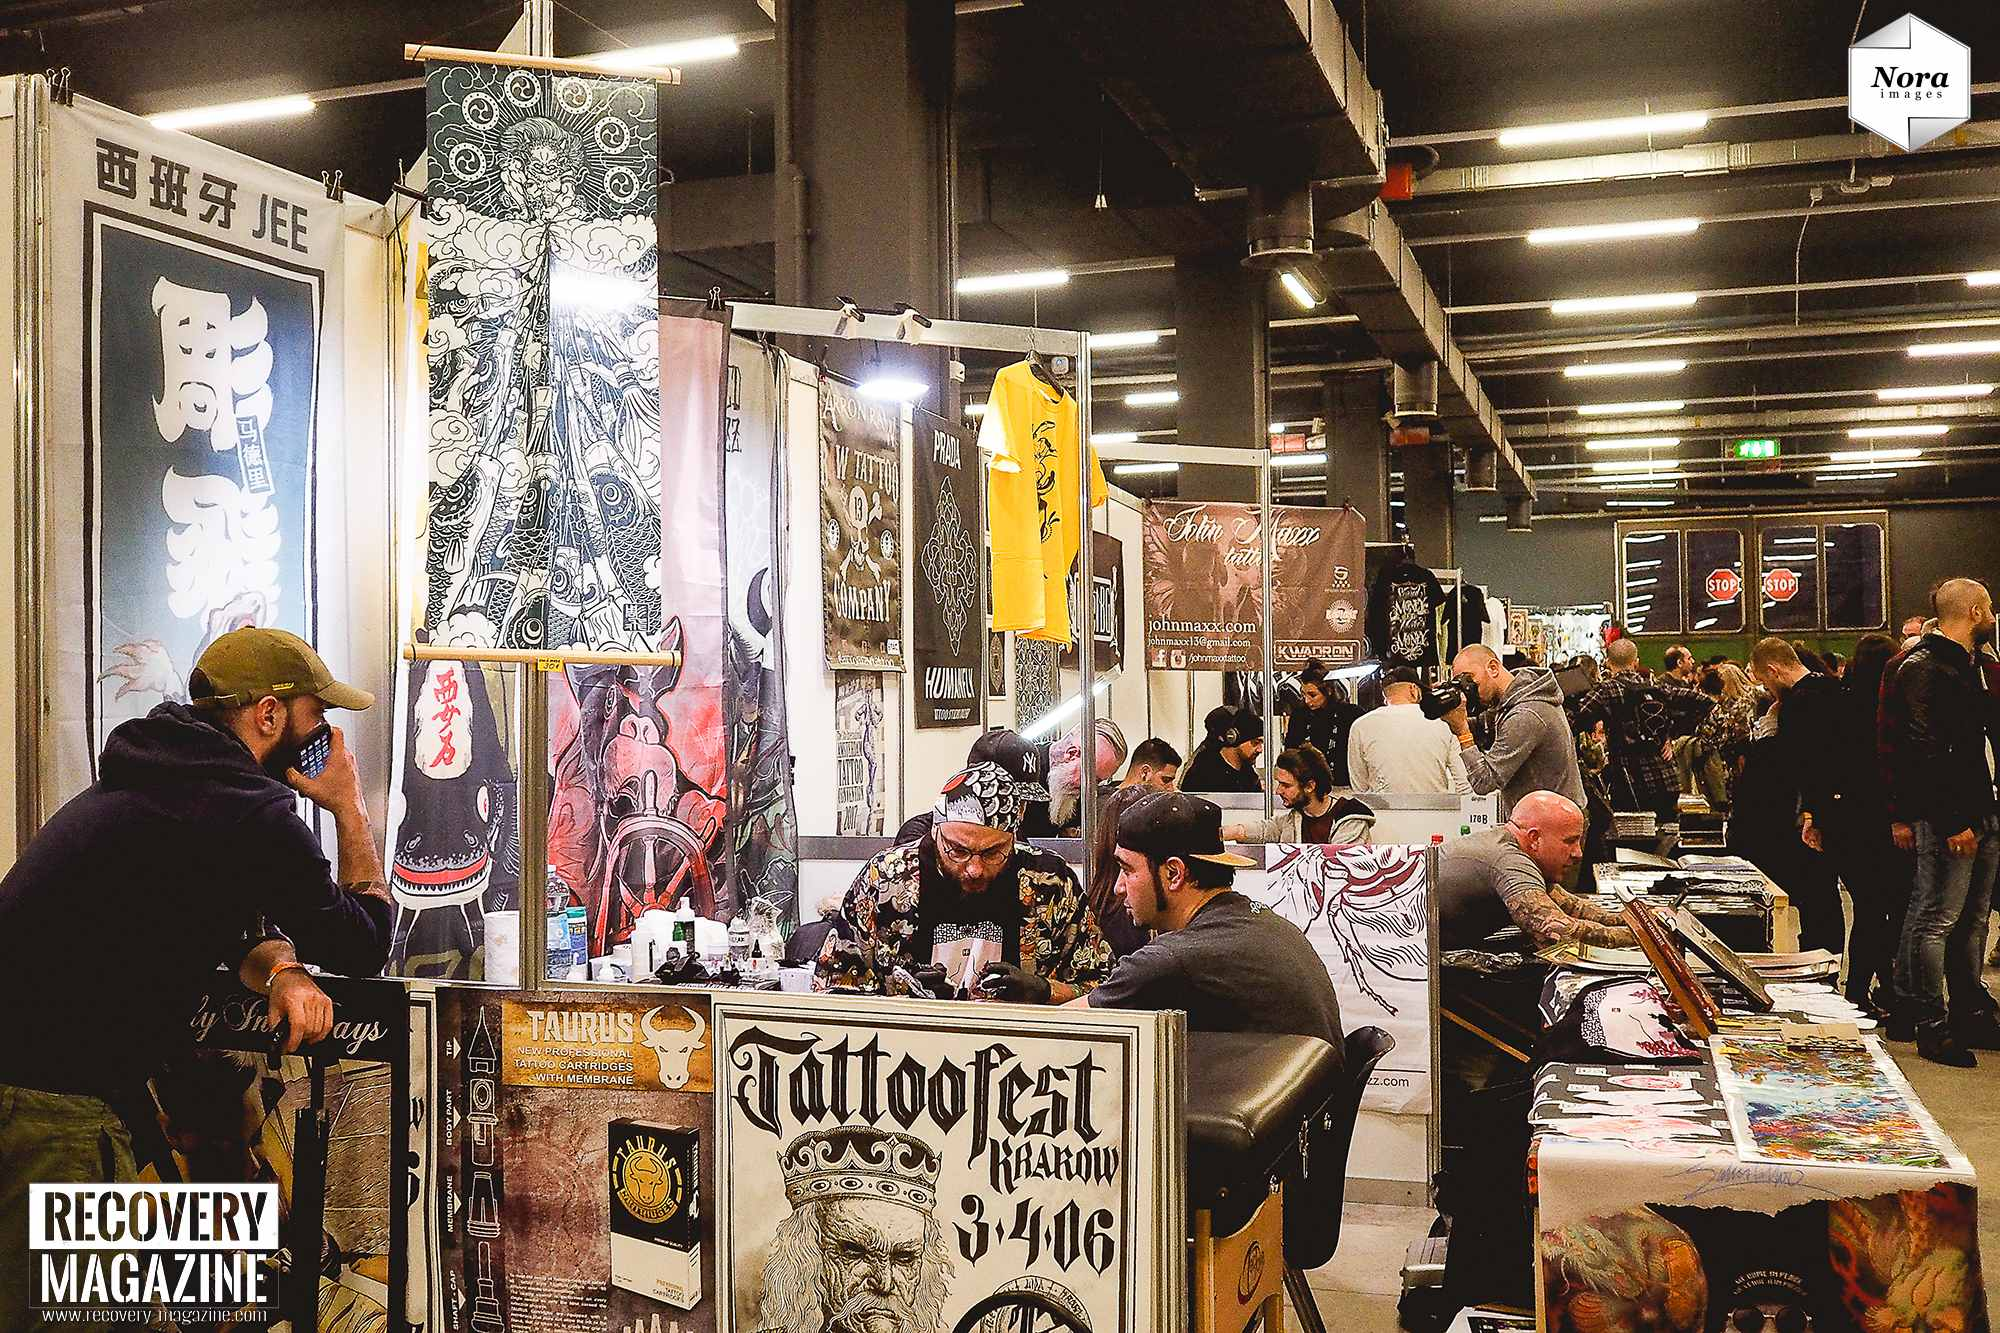 Milano Tattoo Convention nora images